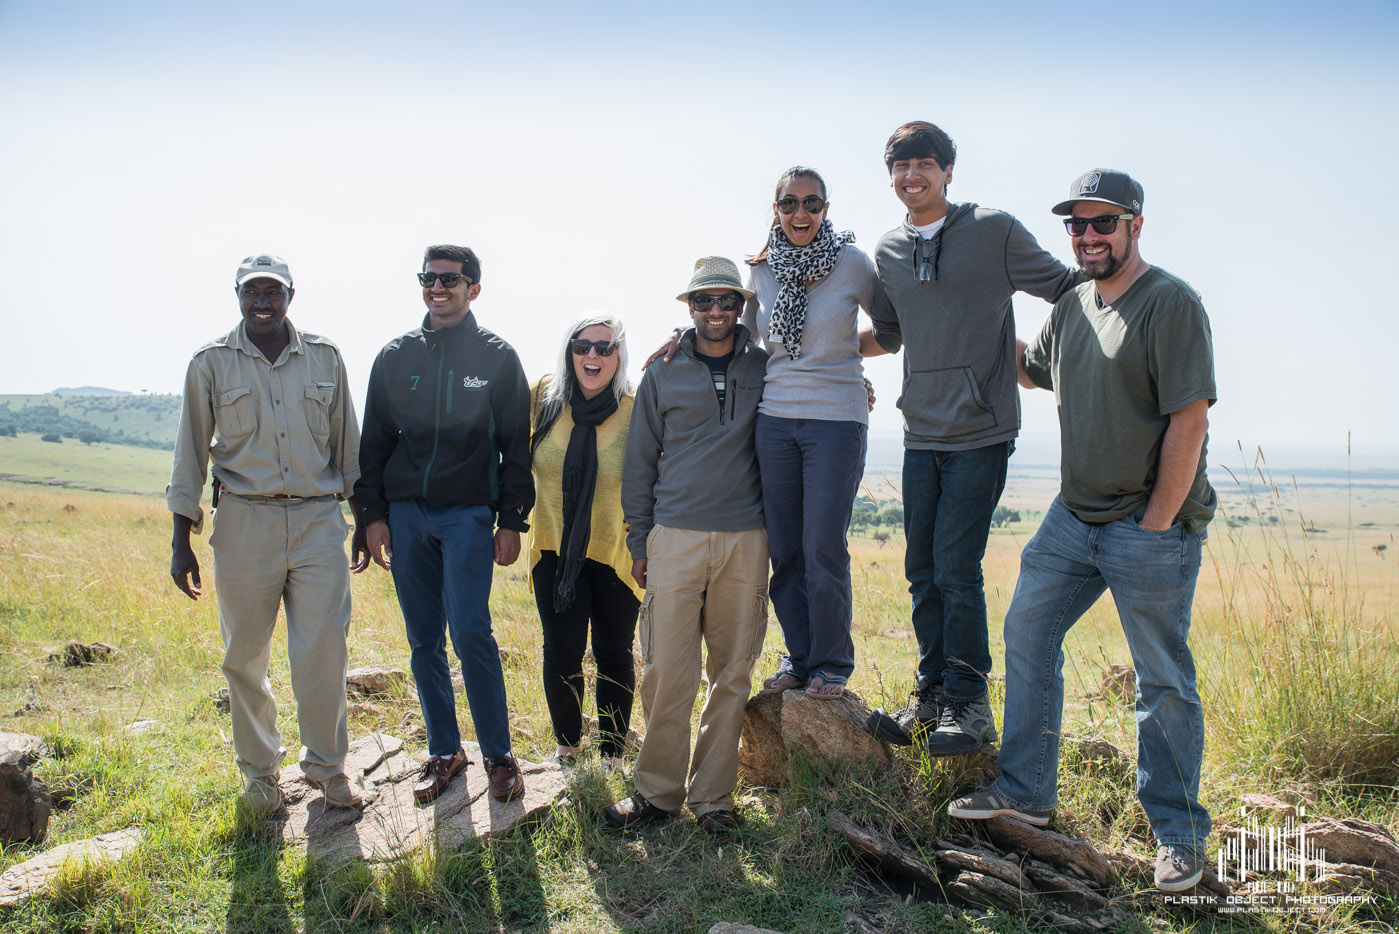 From left to right: Benson our guide, Rohan, Shelby, Ravi, Phera, Pawan, and me. Not pictured Anokh and Claire :(